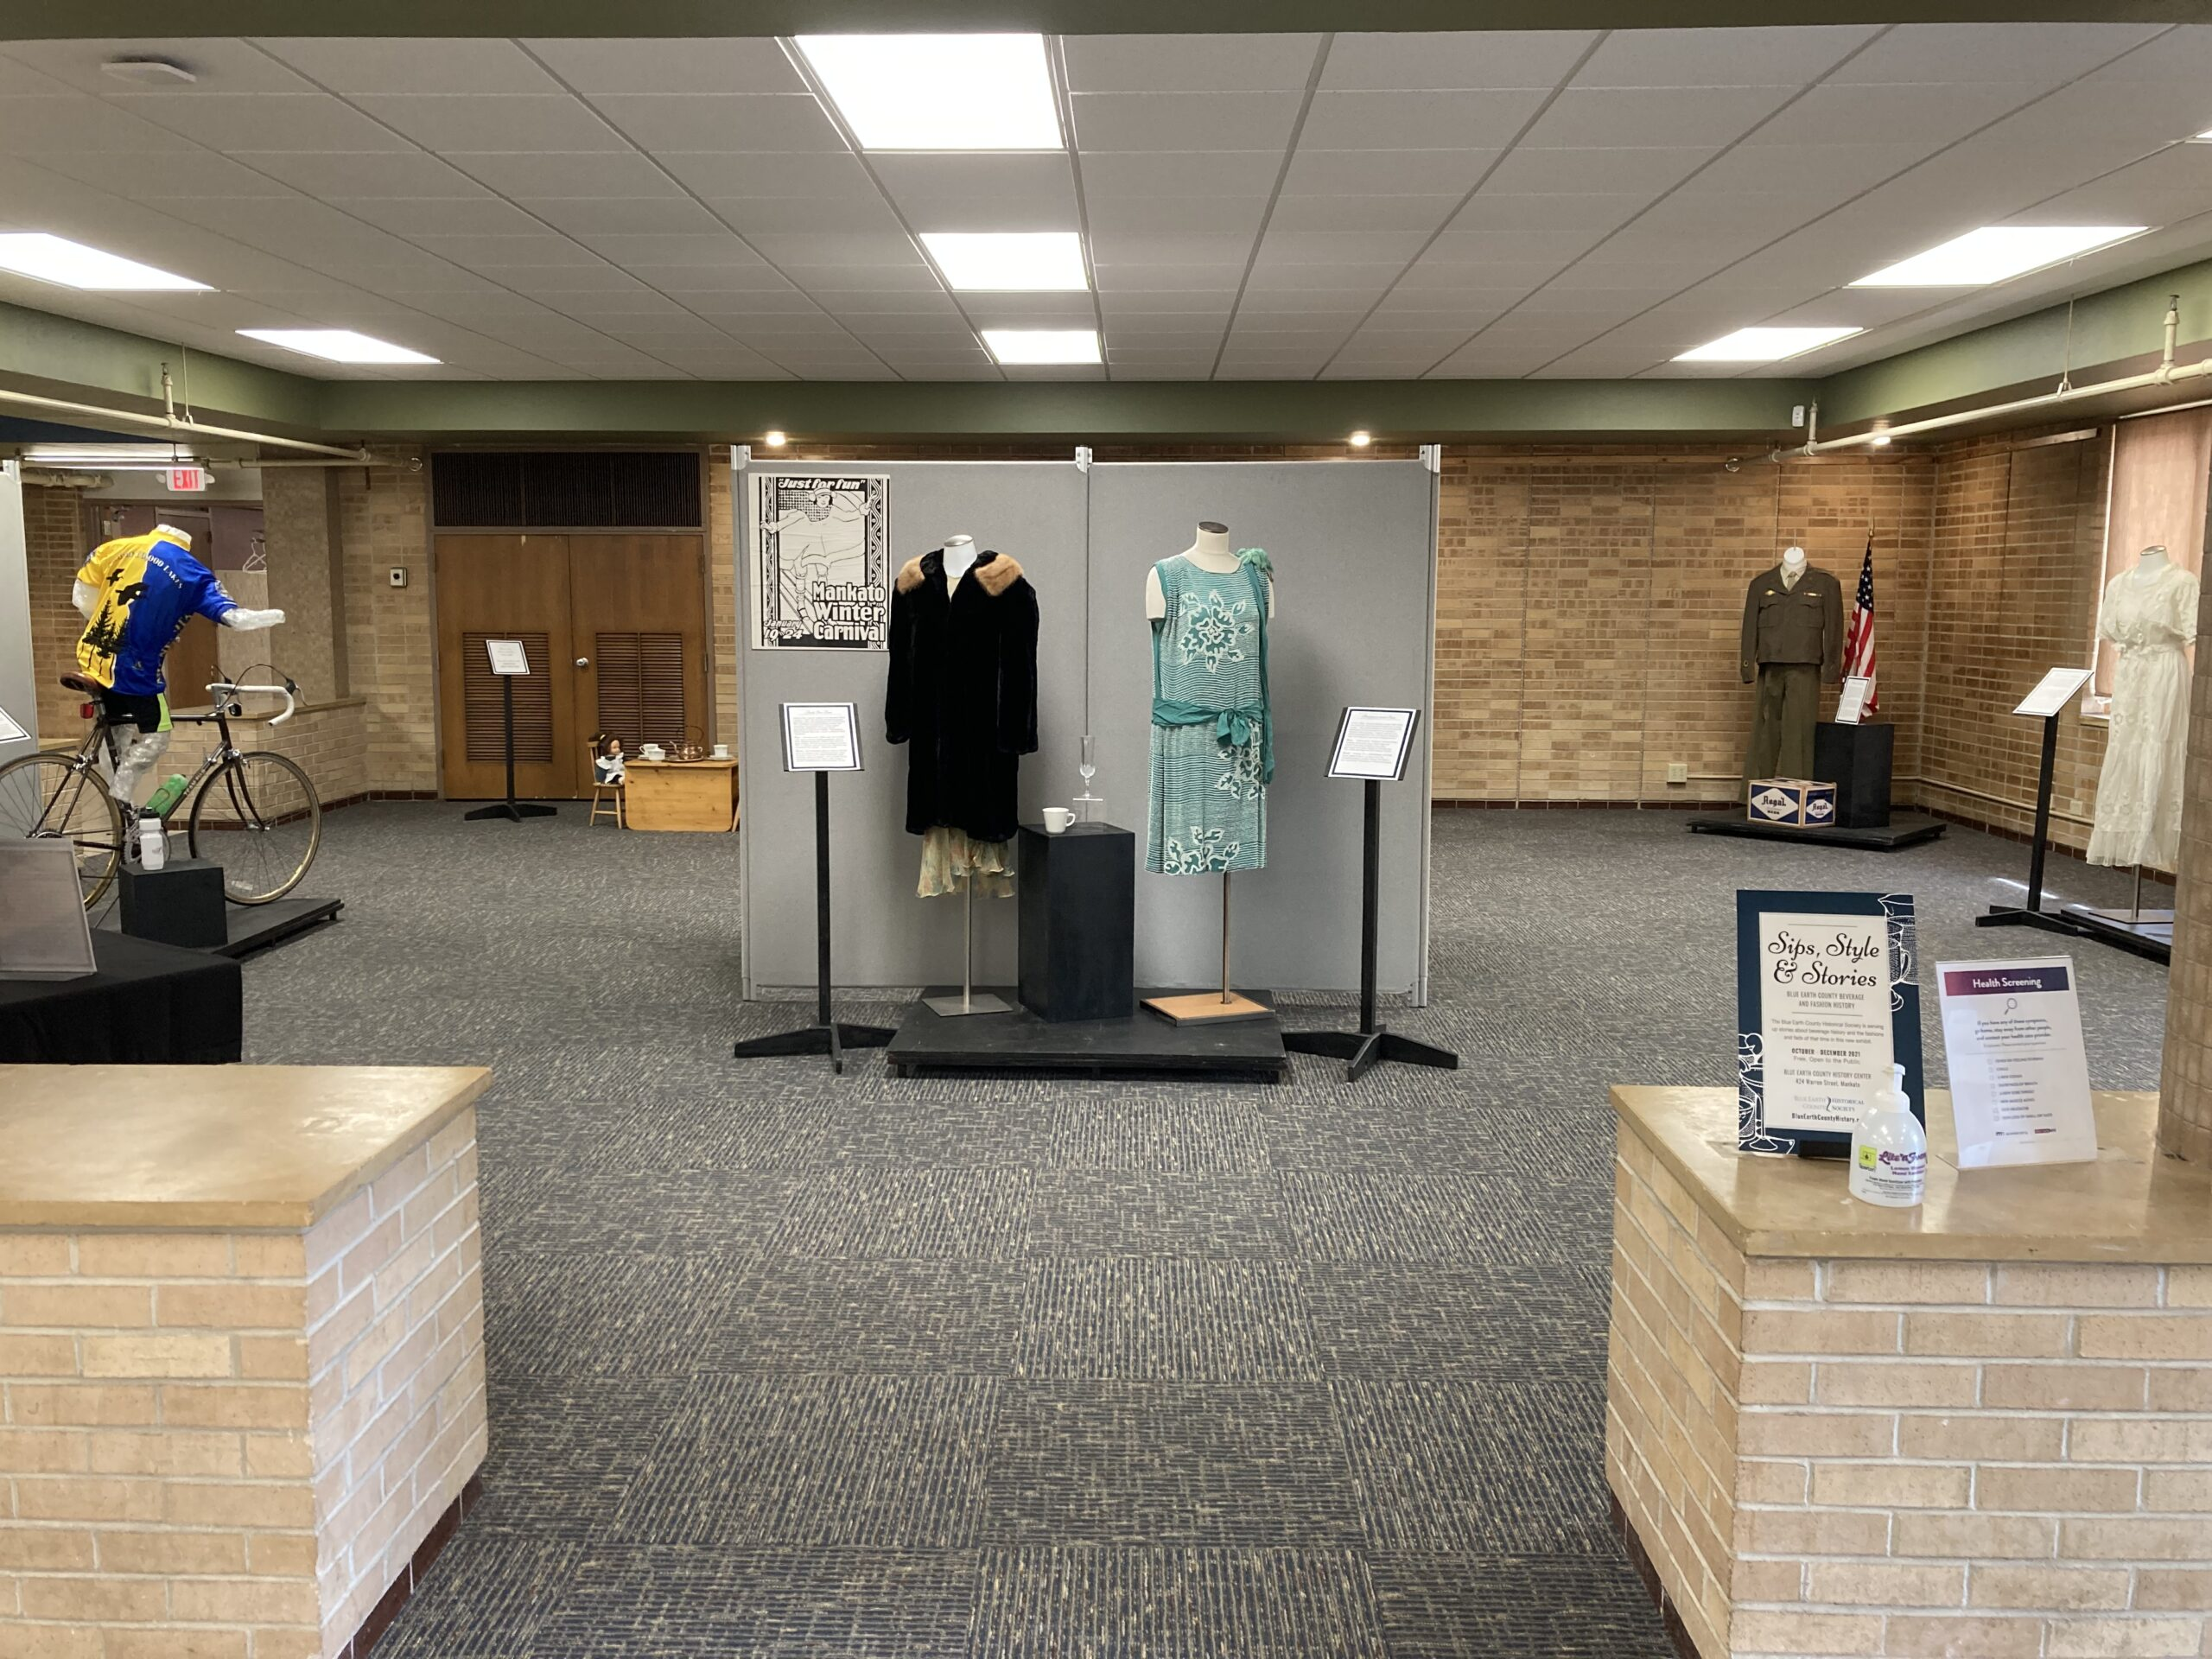 Head-on view of the Sips, Styles and Stories exhibit on display at the History Center through December 31, 2021